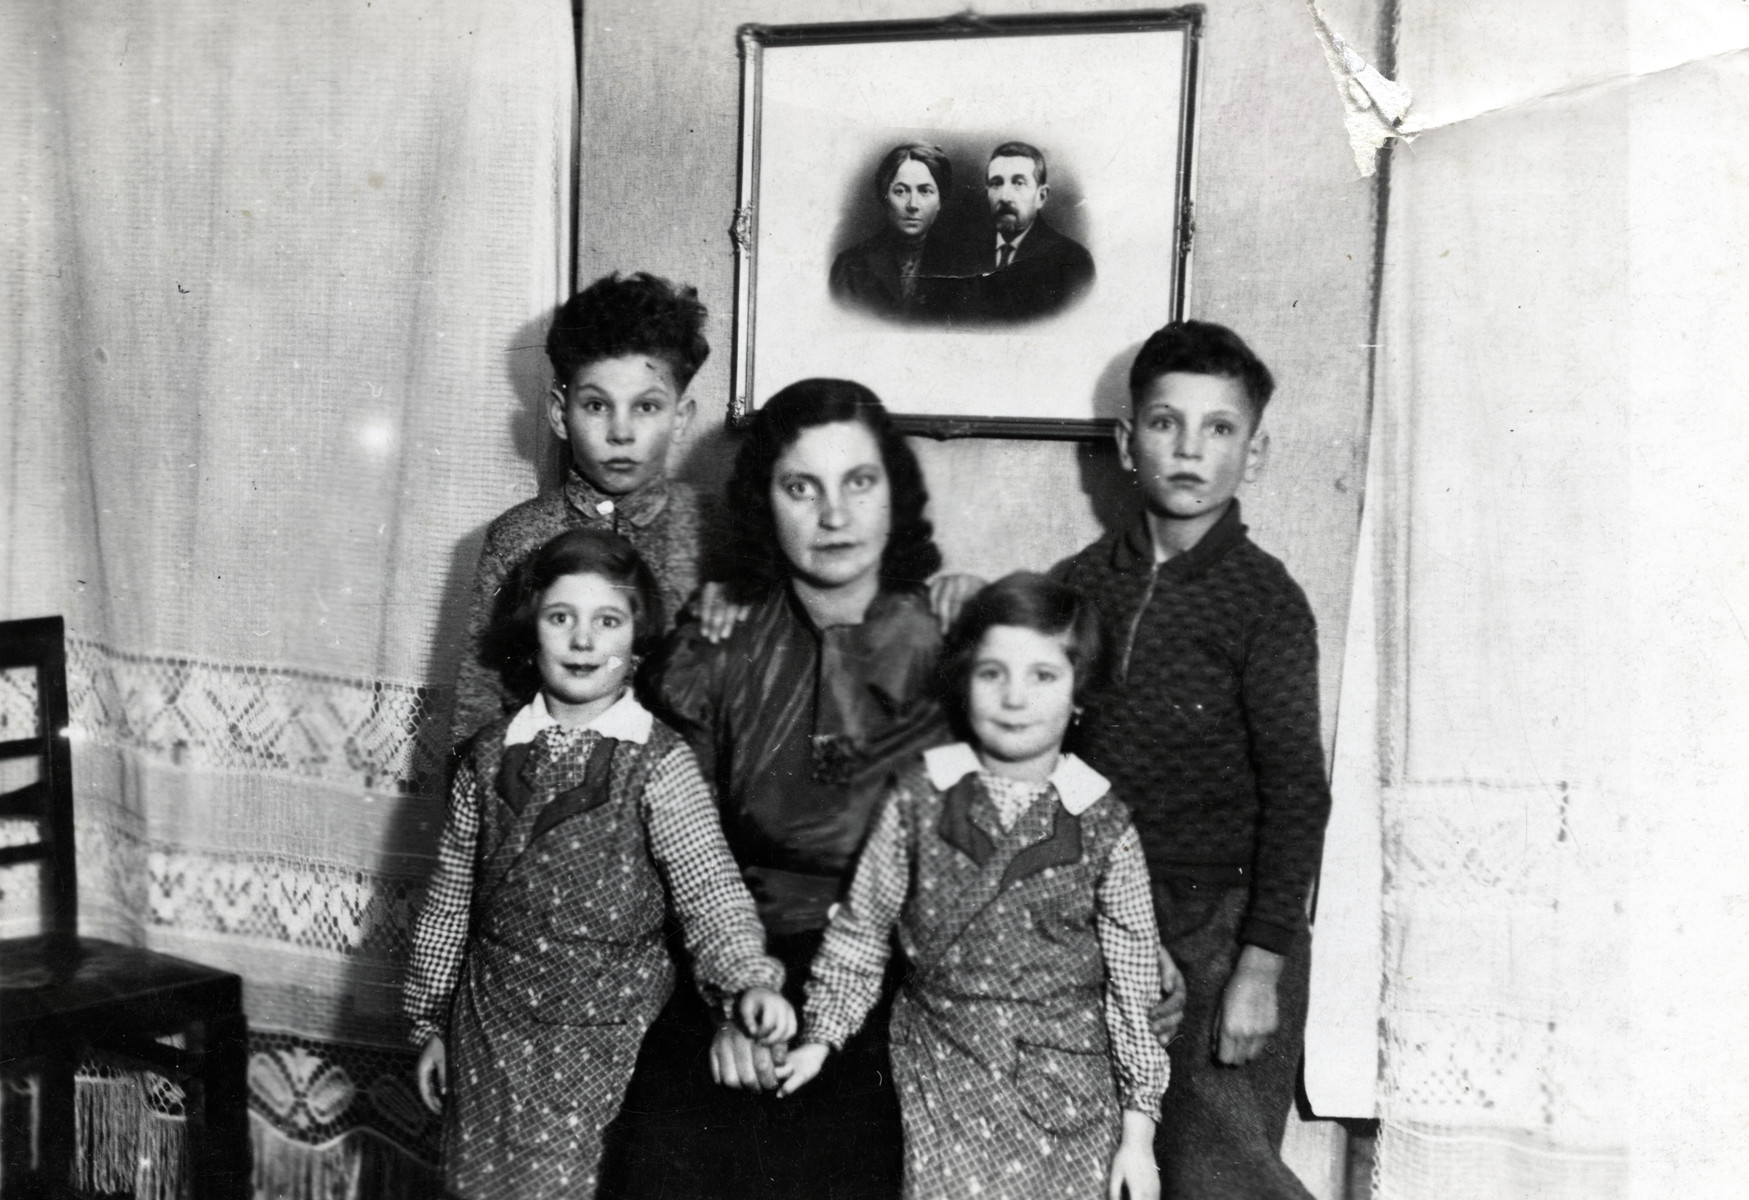 Marta Raifeld Welner poses with her four children in her home underneath a photograph of her inlaws.  Pictured are Benno Raifeld (right) and Theo Raifeld (left). Martha Anders Raifeld is in the center, and her twins Regina and Ruth are in front.